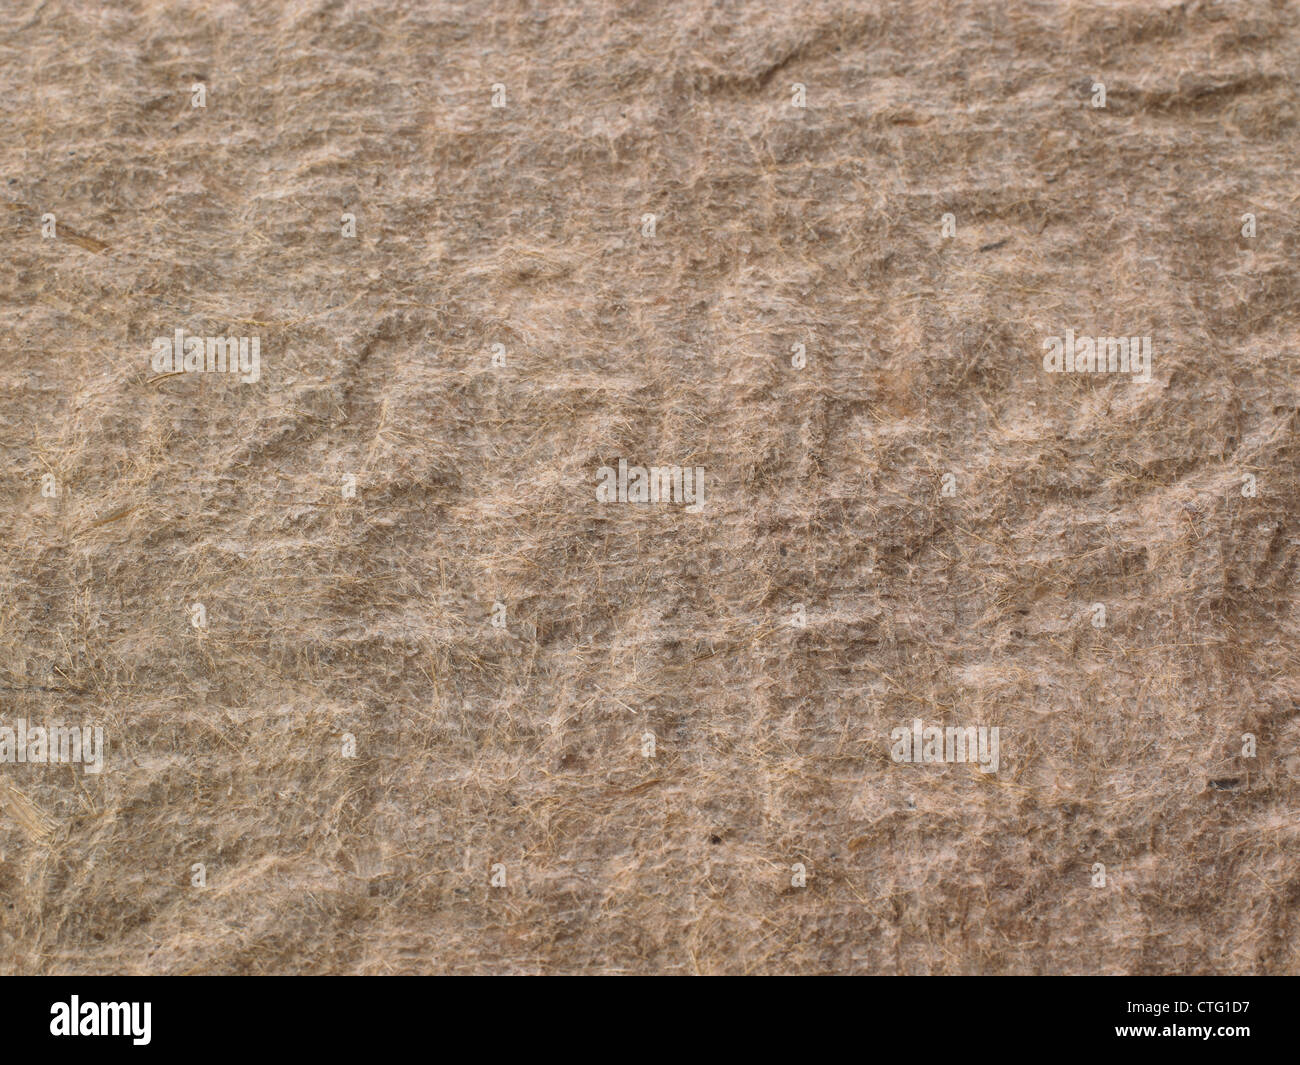 wrinkled parchment paper background - Stock Image